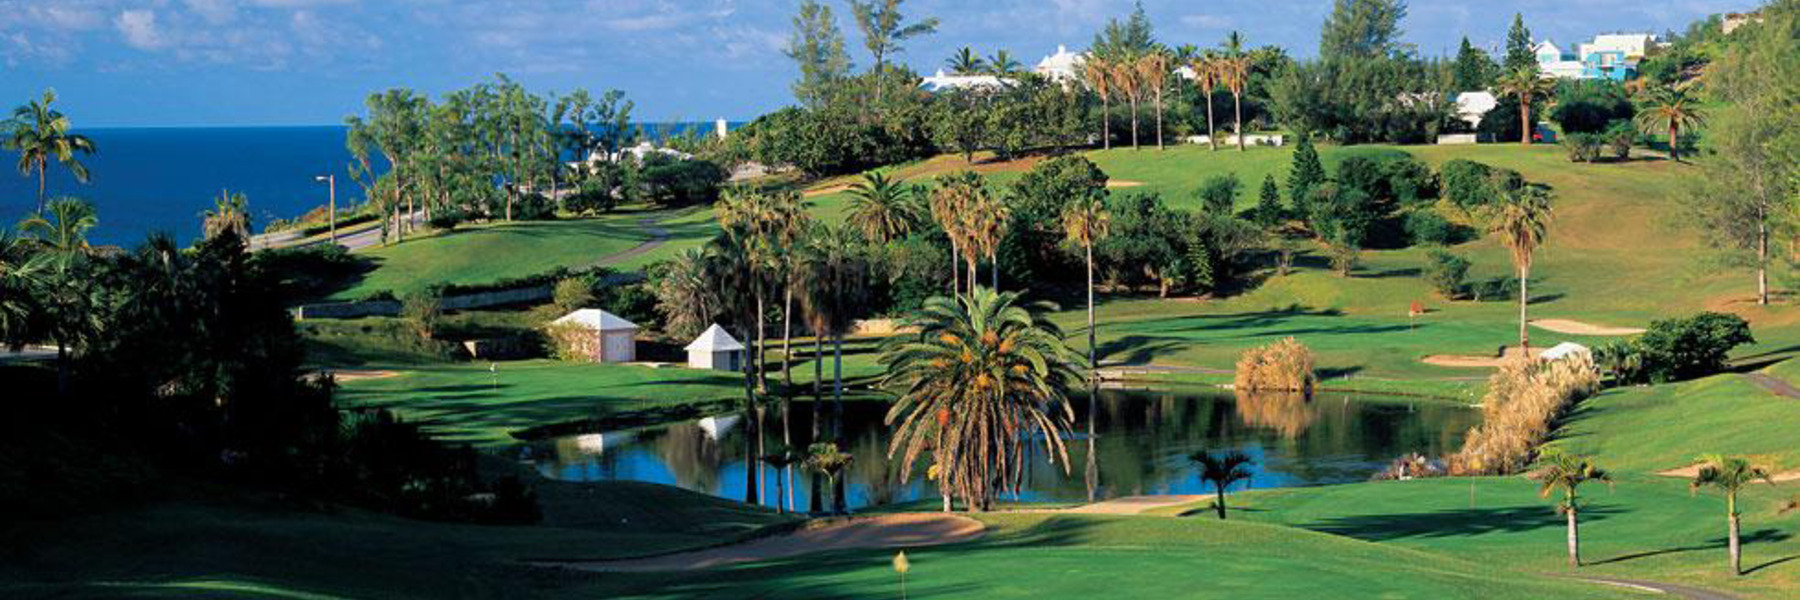 Golf Vacation Package - Turtle Hill Golf Club at Fairmont Southampton